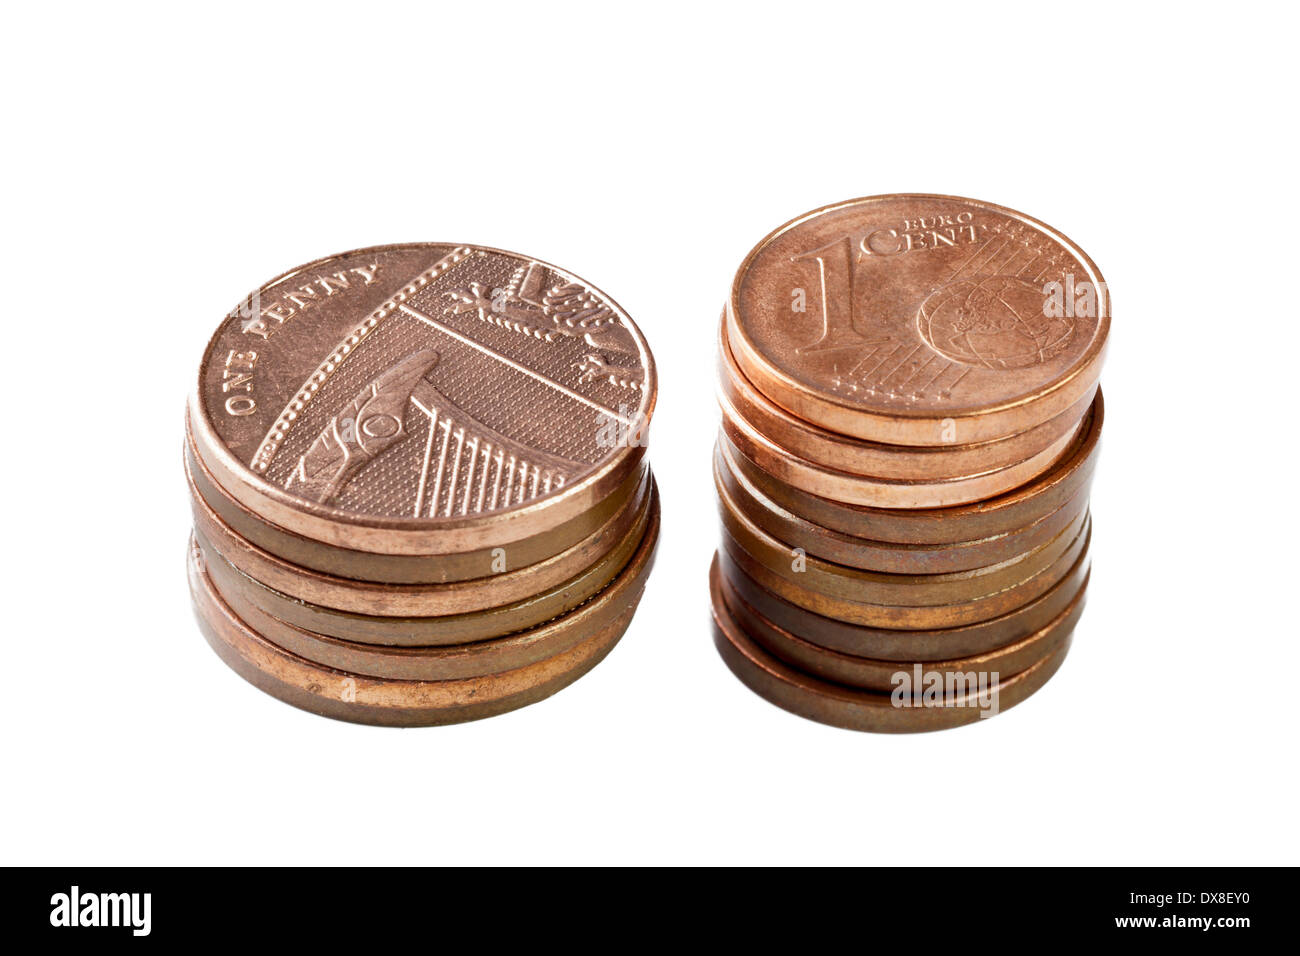 British pennies and Euro cent coins Stock Photo